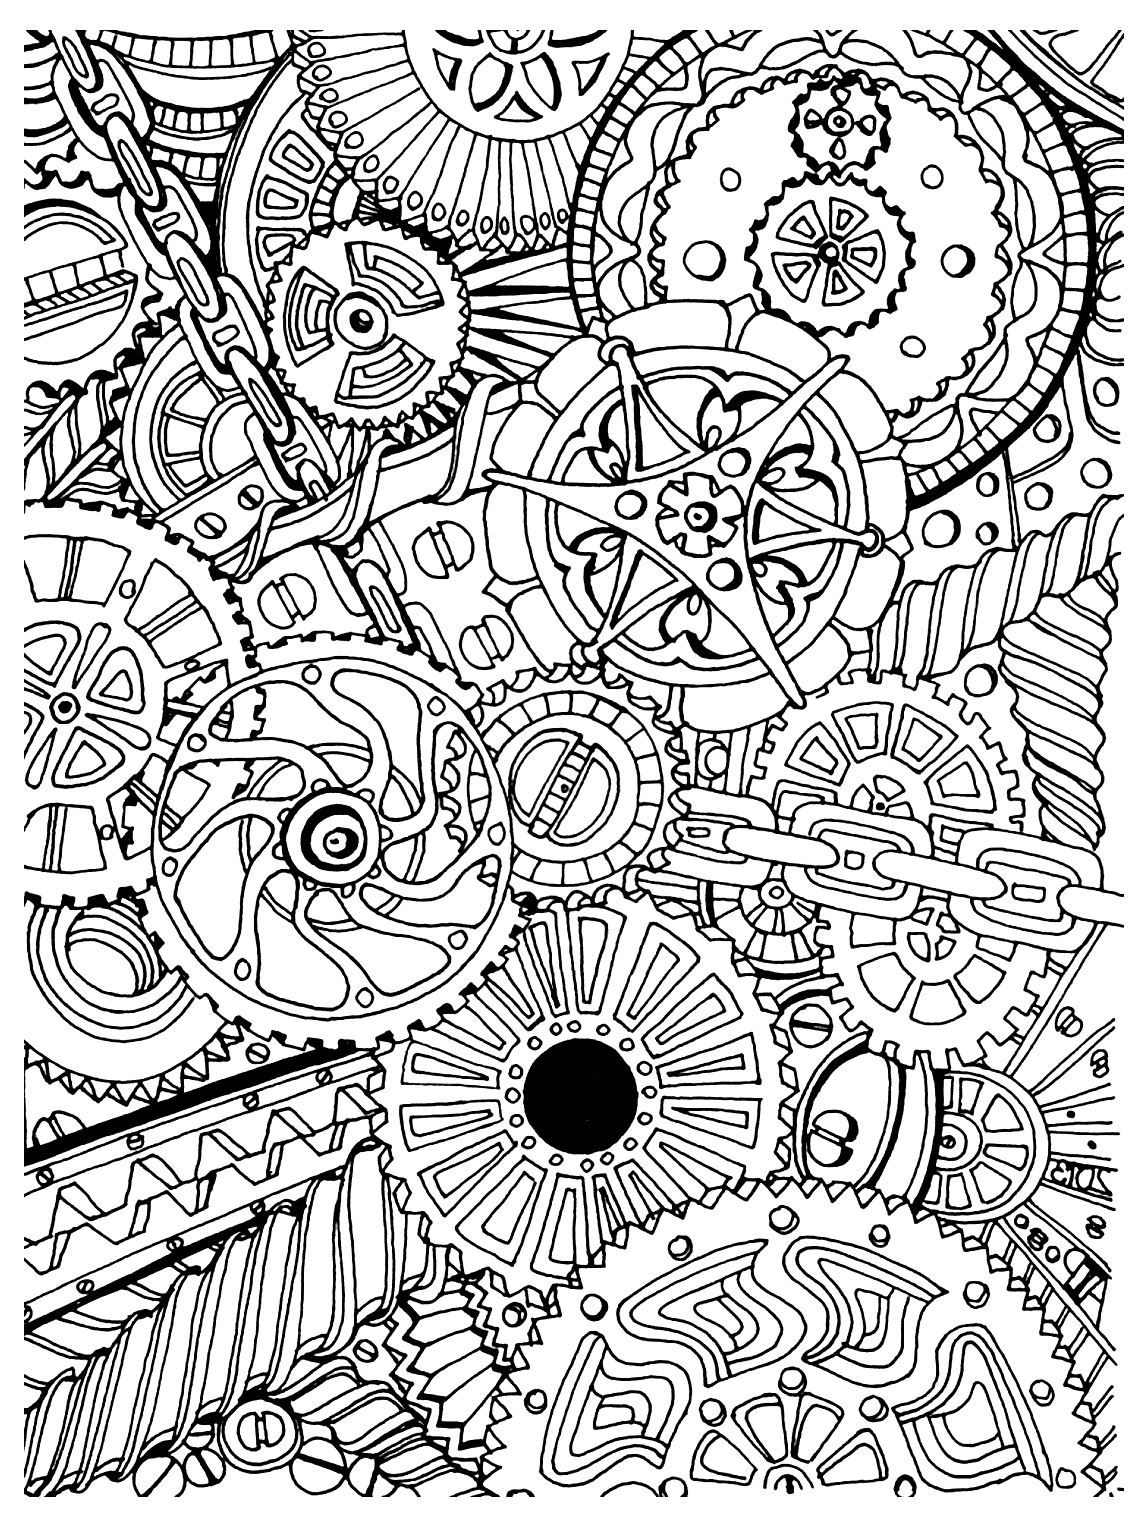 Stress relief coloring sheets free - To Print This Free Coloring Page Coloring Adult Zen Anti Stress